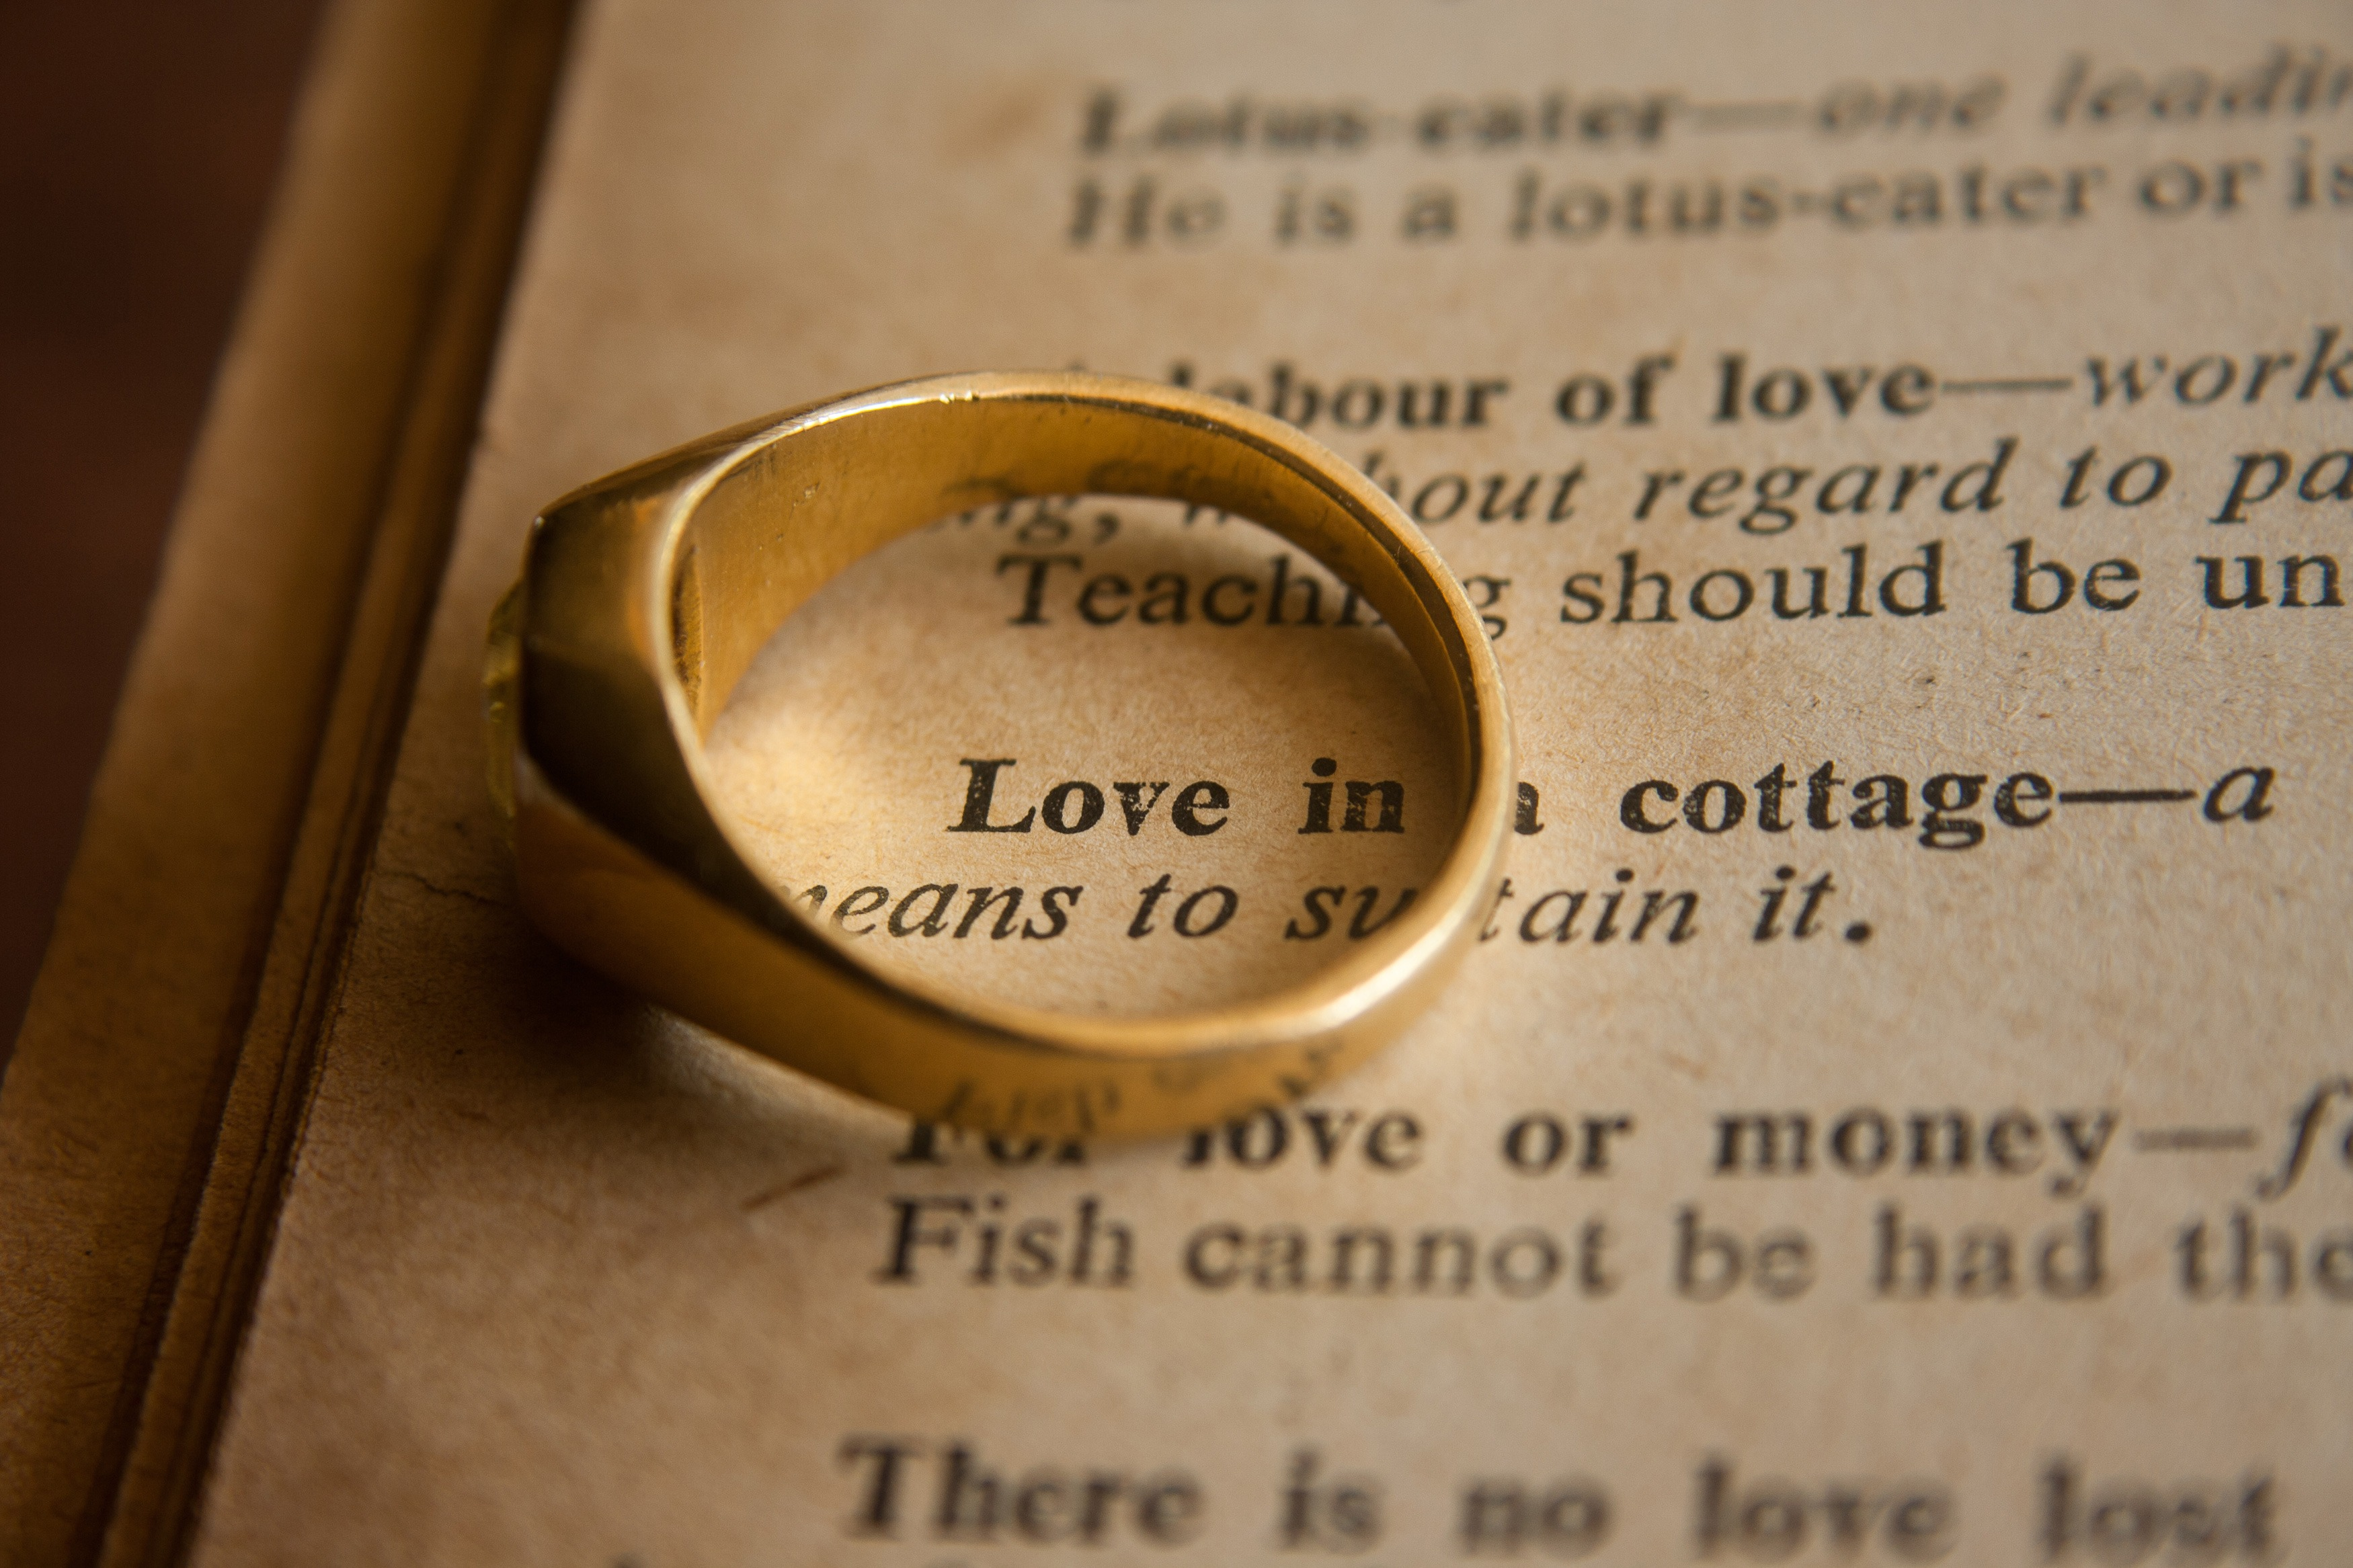 A ring and love letter for Valentine's day or Friend's Day an alternative journey